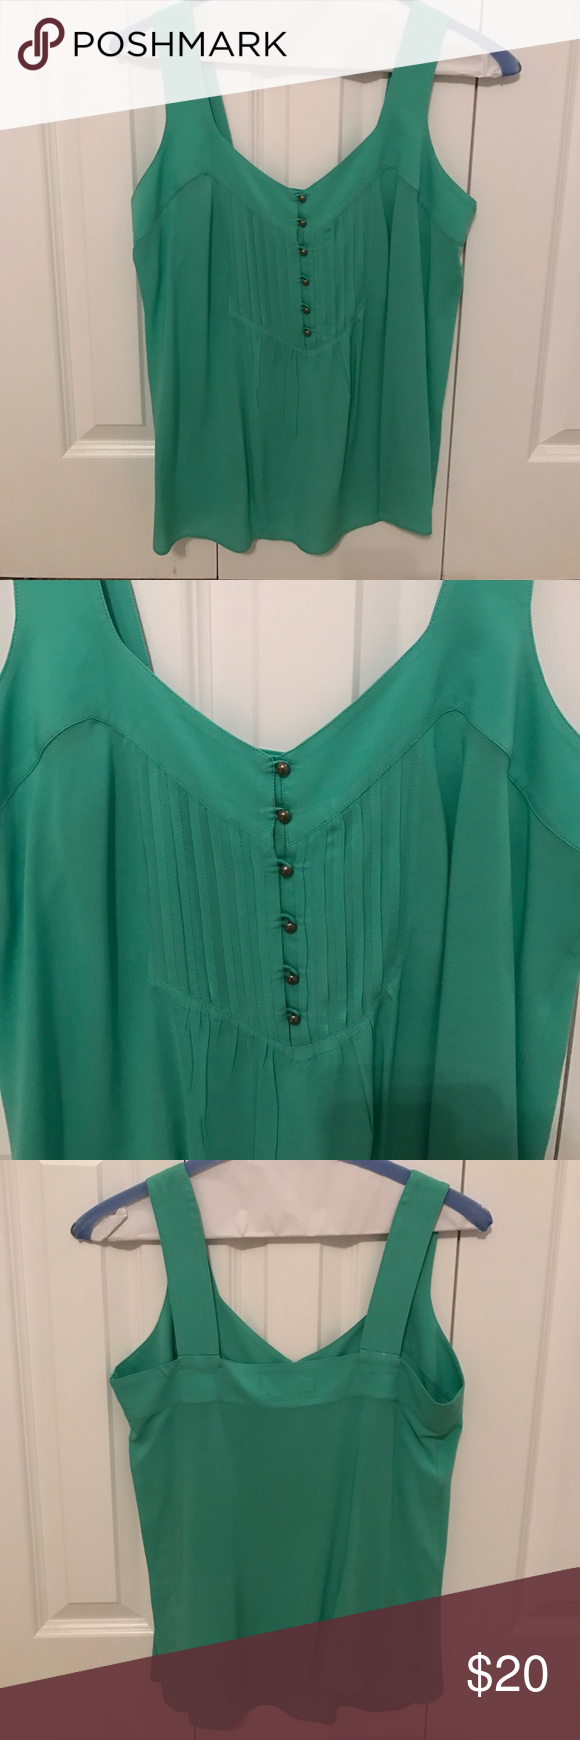 Banana republic top! Banana republic tank top. Size 8, barely worn. Front button detail, flows.  Mint color. Good summer top! Banana Republic Tops